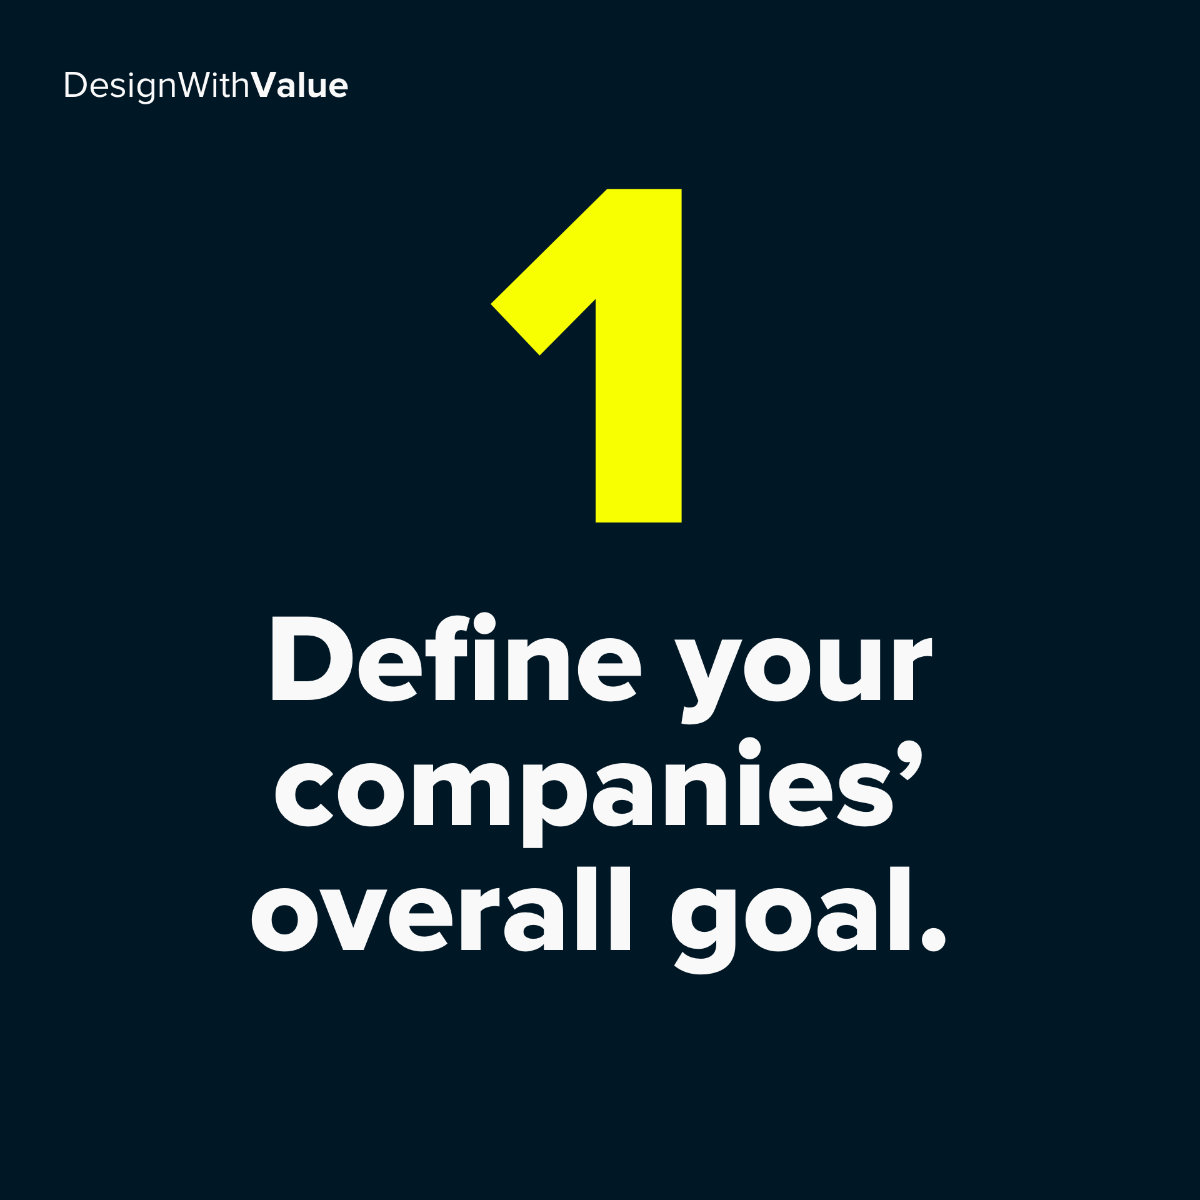 1: Define your companies overall goal